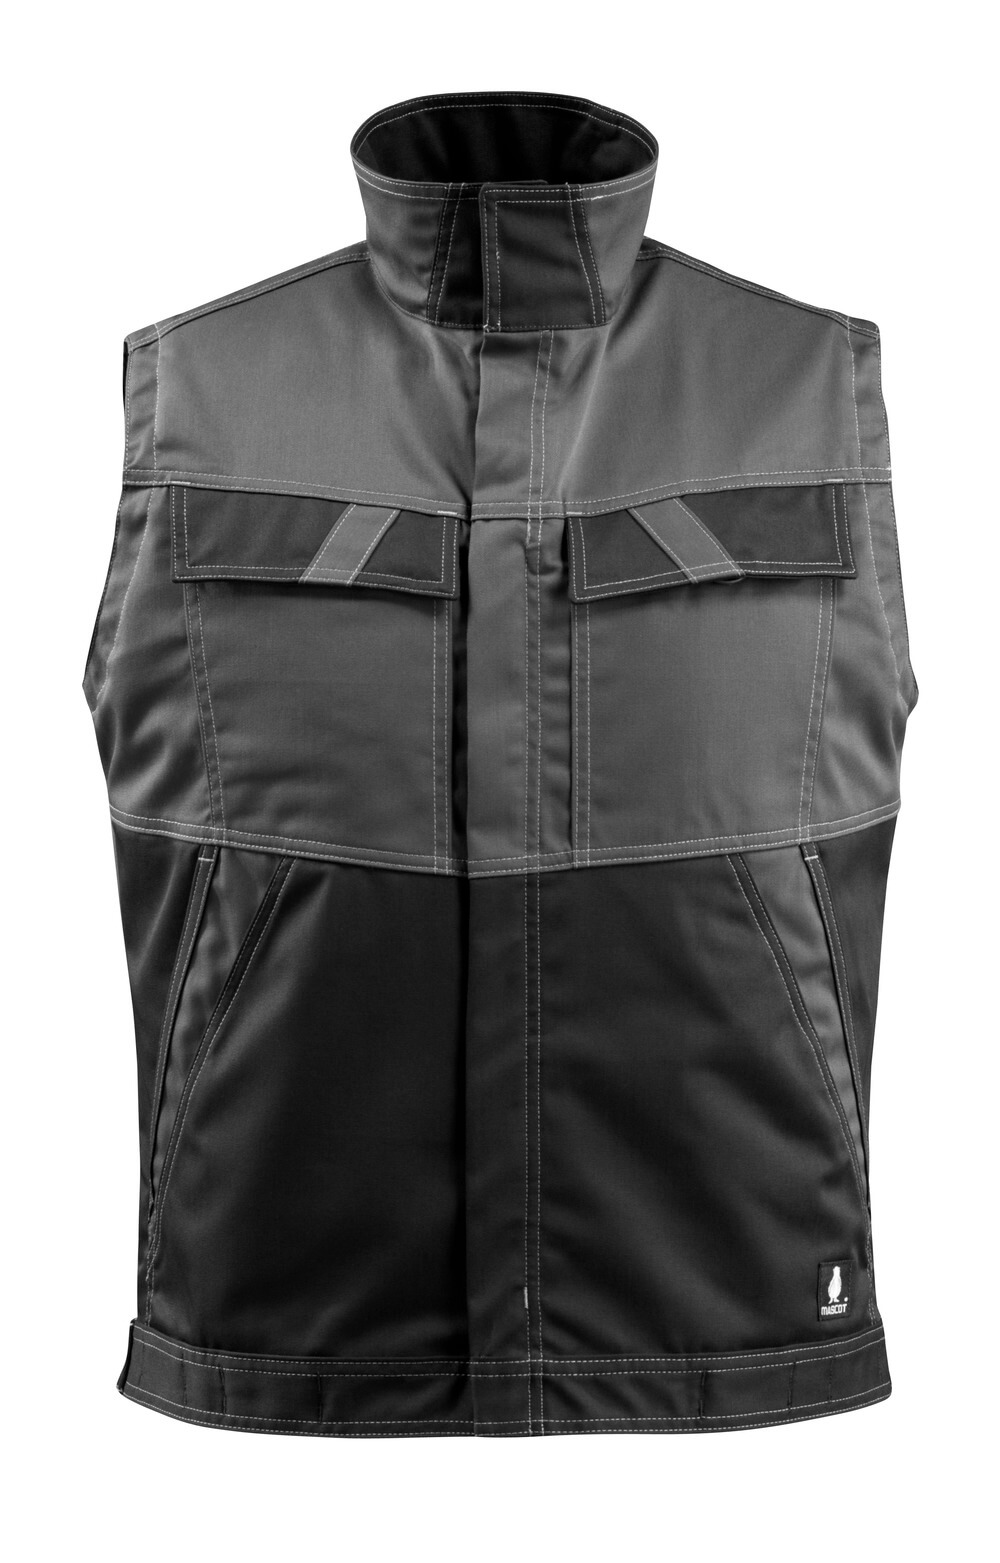 15754-330-1809 Gilet - dark anthracite/black